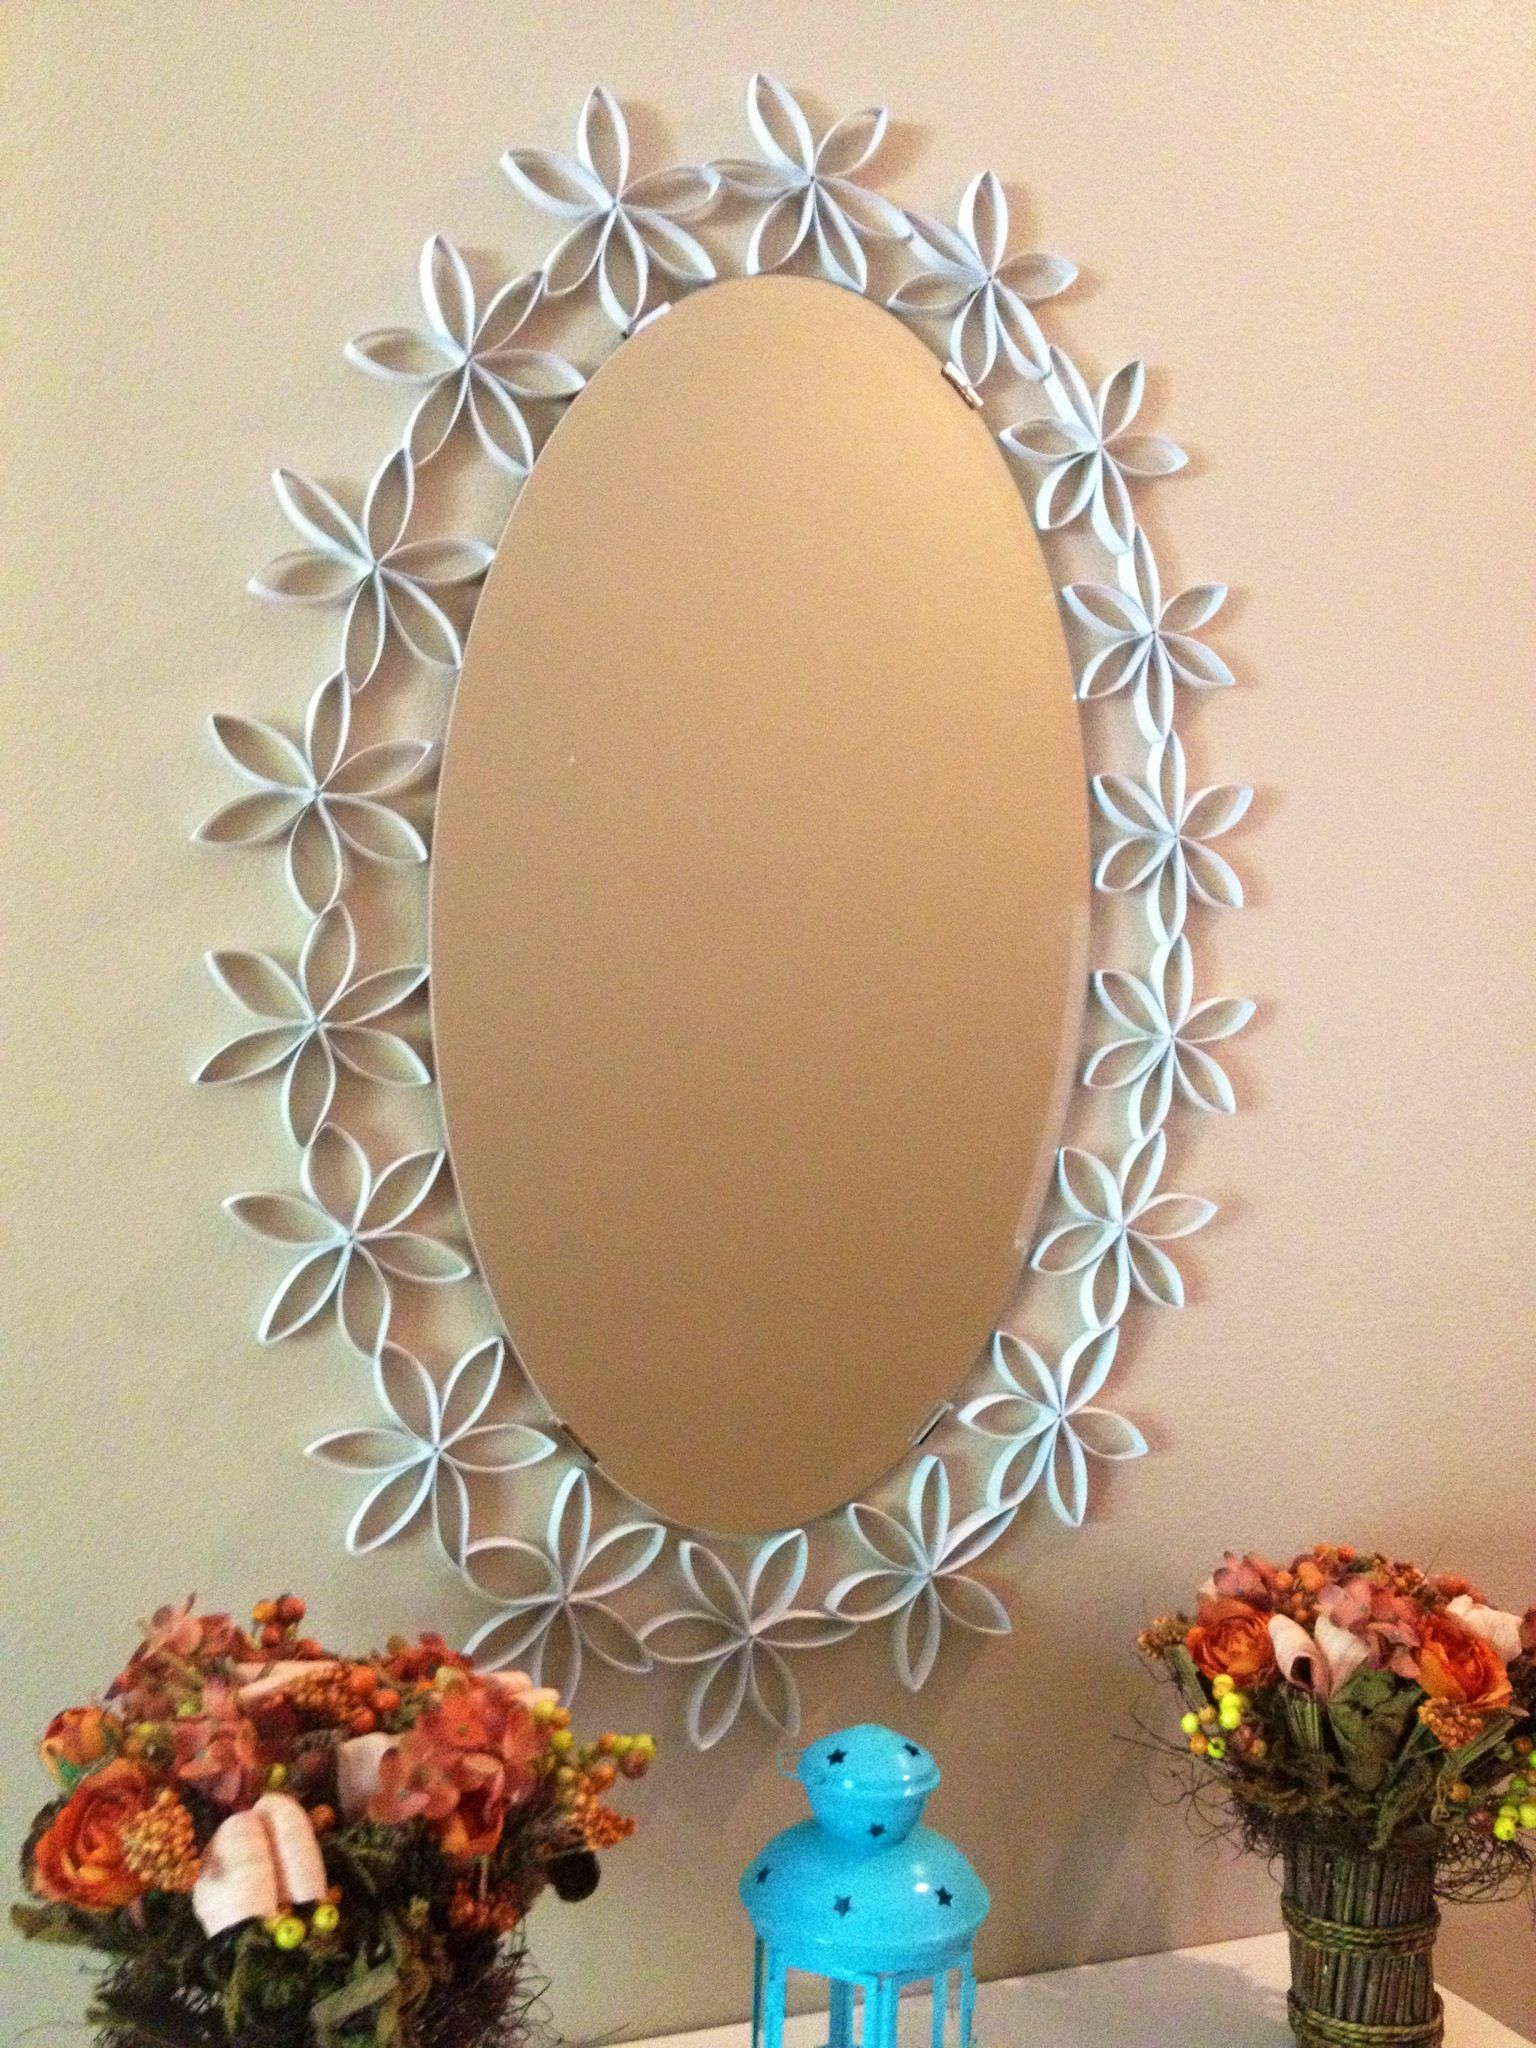 Mirror Border Made Of Tissue Paper Rolls Cut In 12